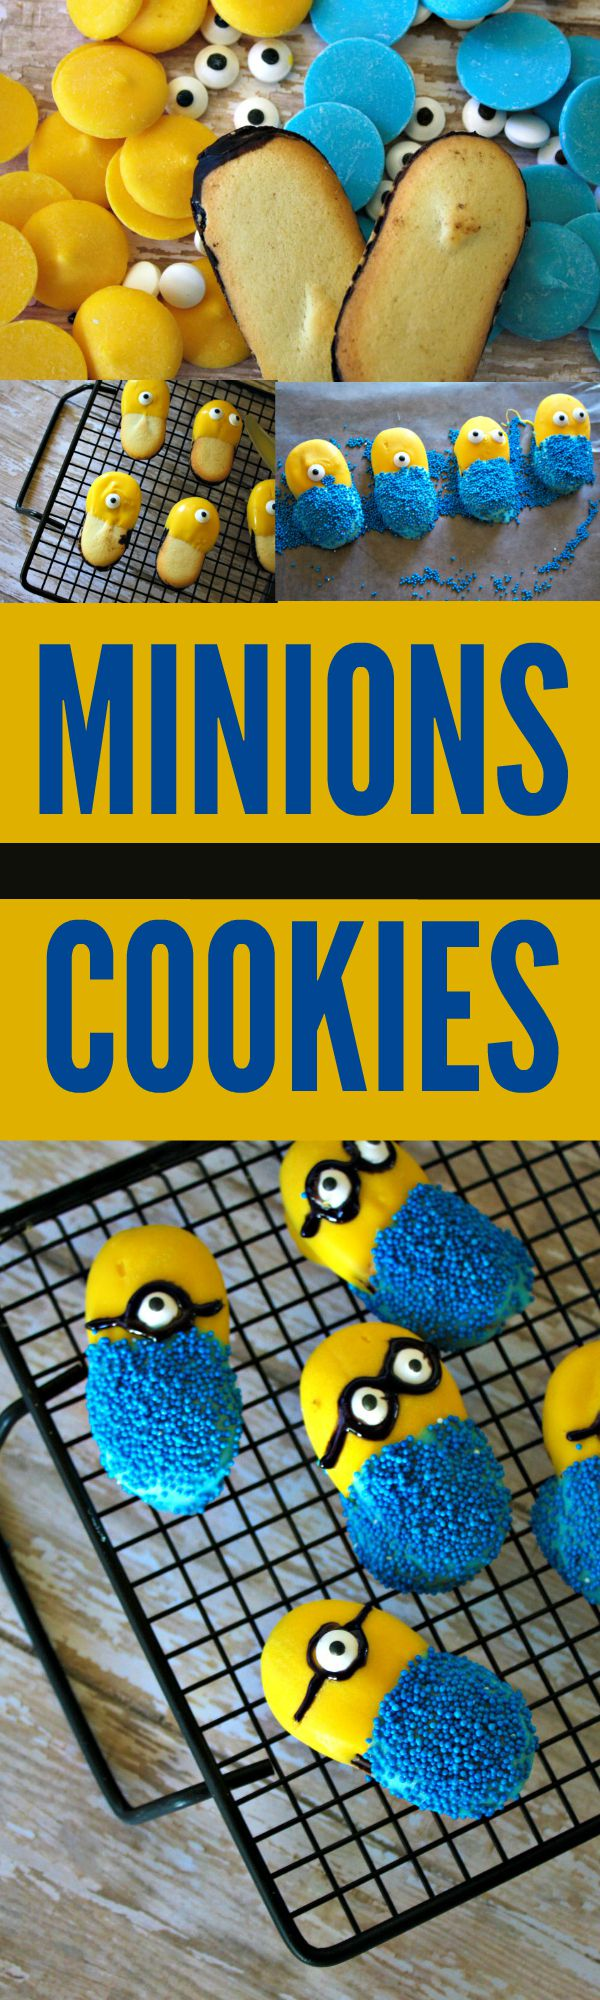 Minions Cookies for Milano Cookies Lovers